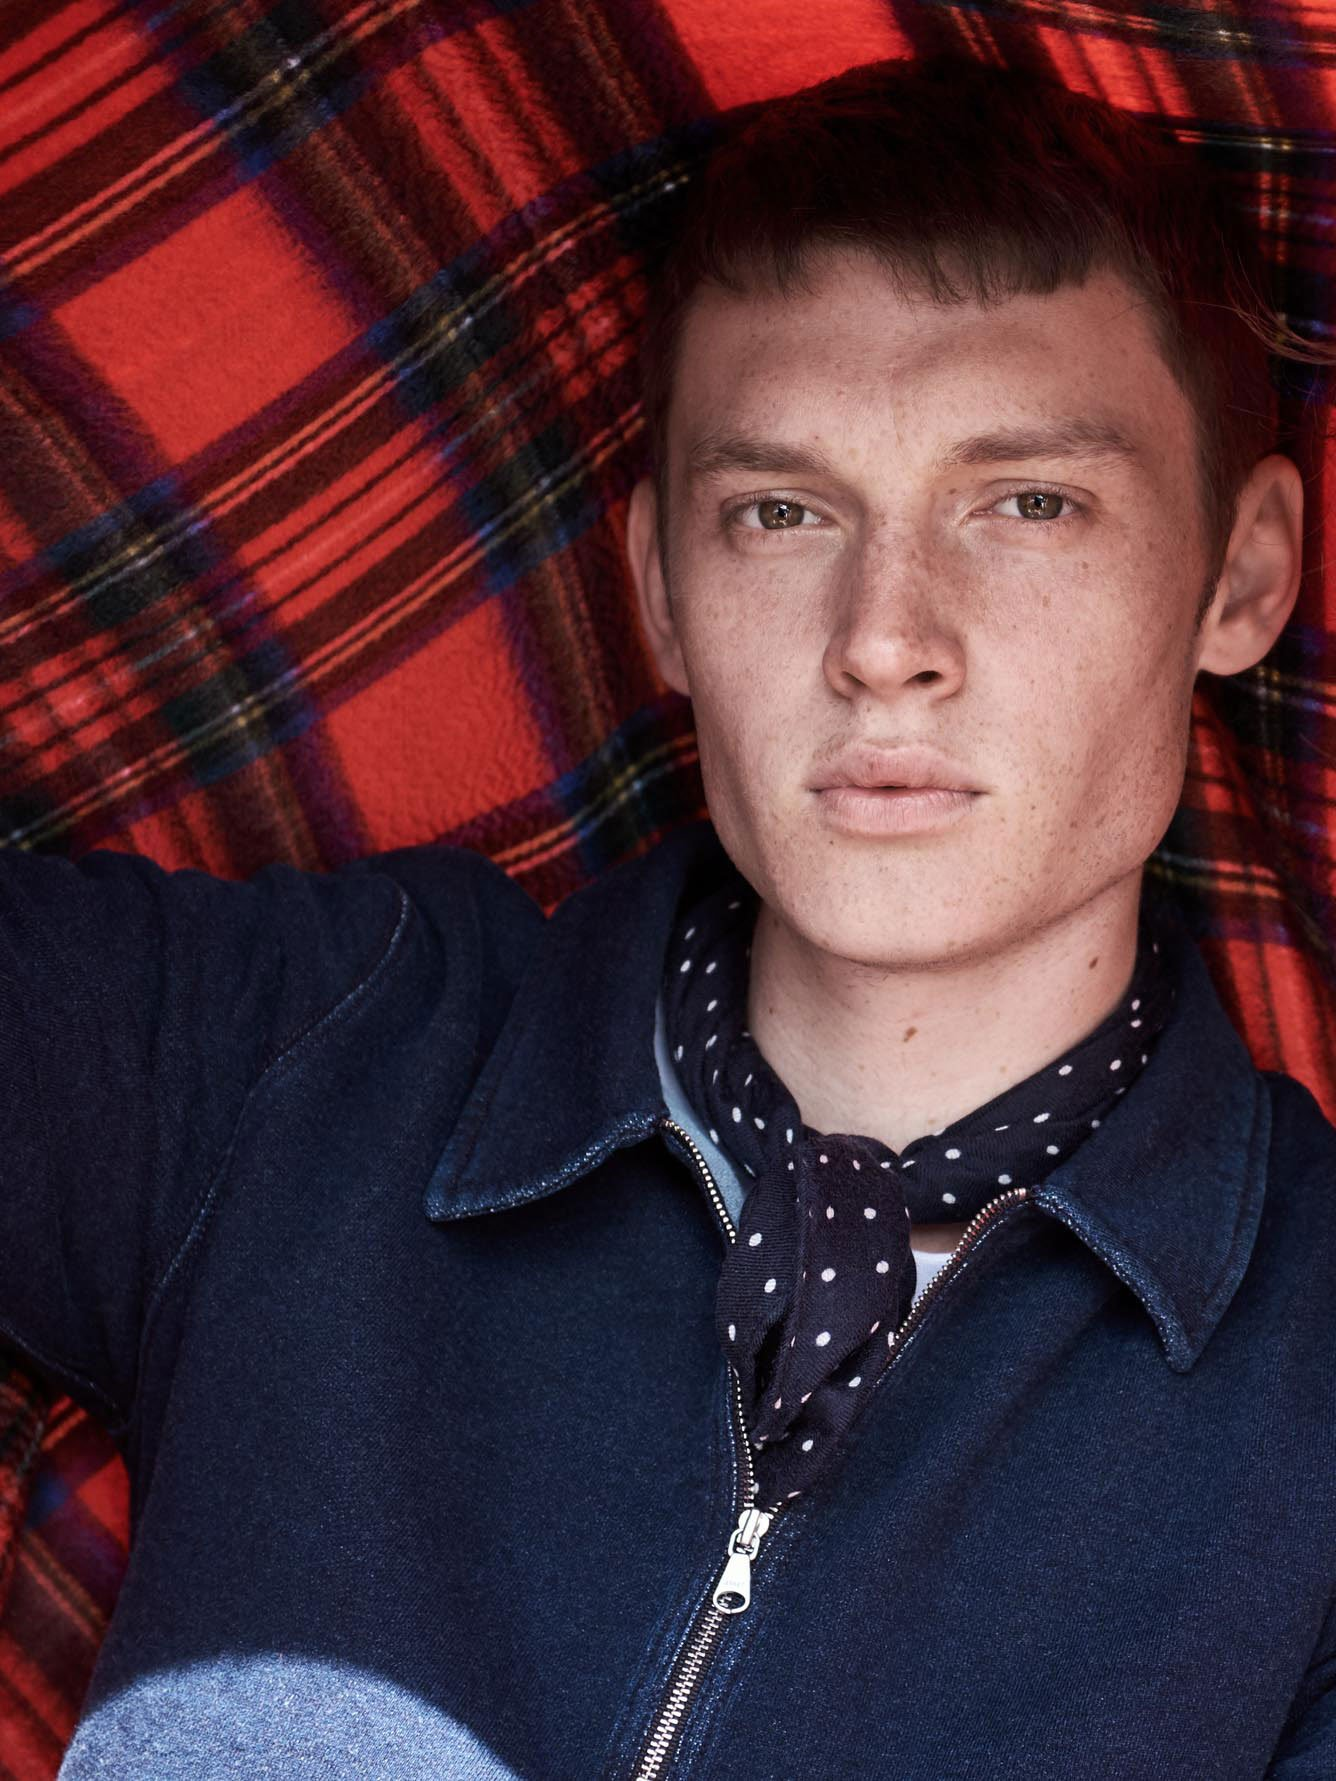 Male Model Wearing a navy neckerchief with white spots and a navy sports code holding a red tartan blanket behind him